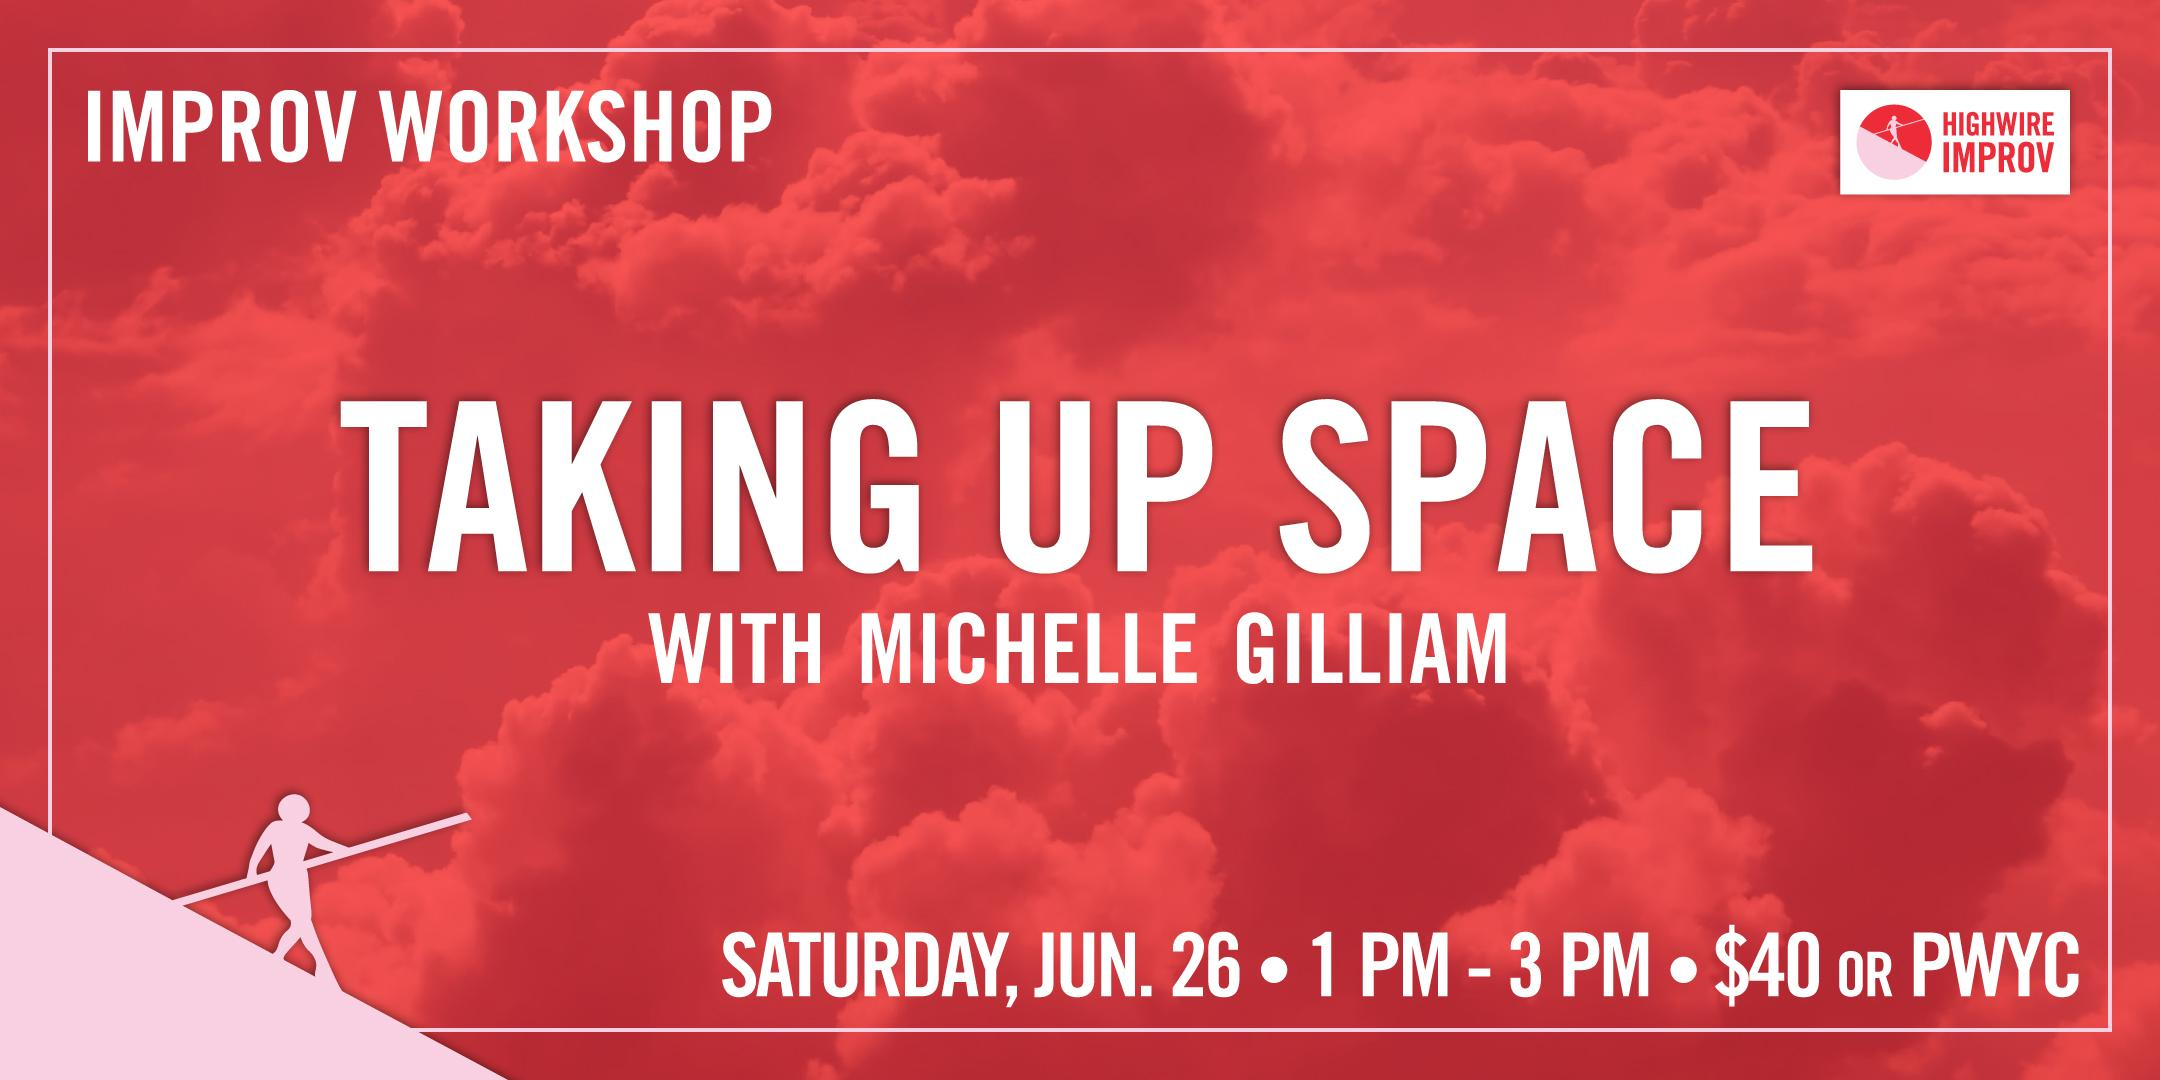 Taking Up Space with Michelle Gilliam